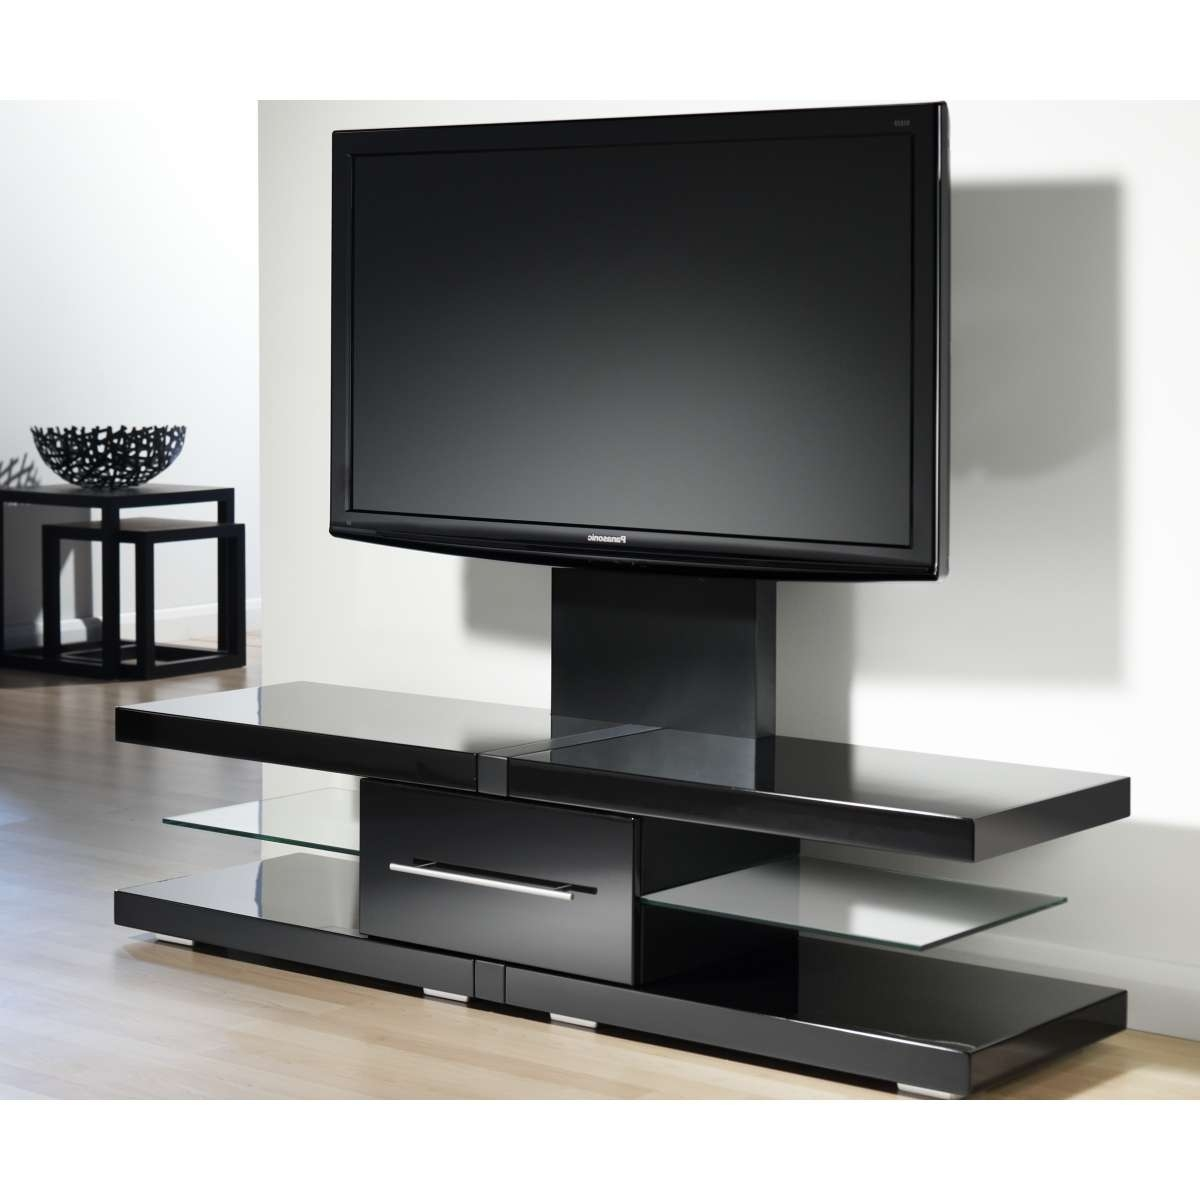 Incredible Flower In Cupboard Television Dvd Player Vcd Books Vase Within Long Black Tv Stands (View 7 of 15)